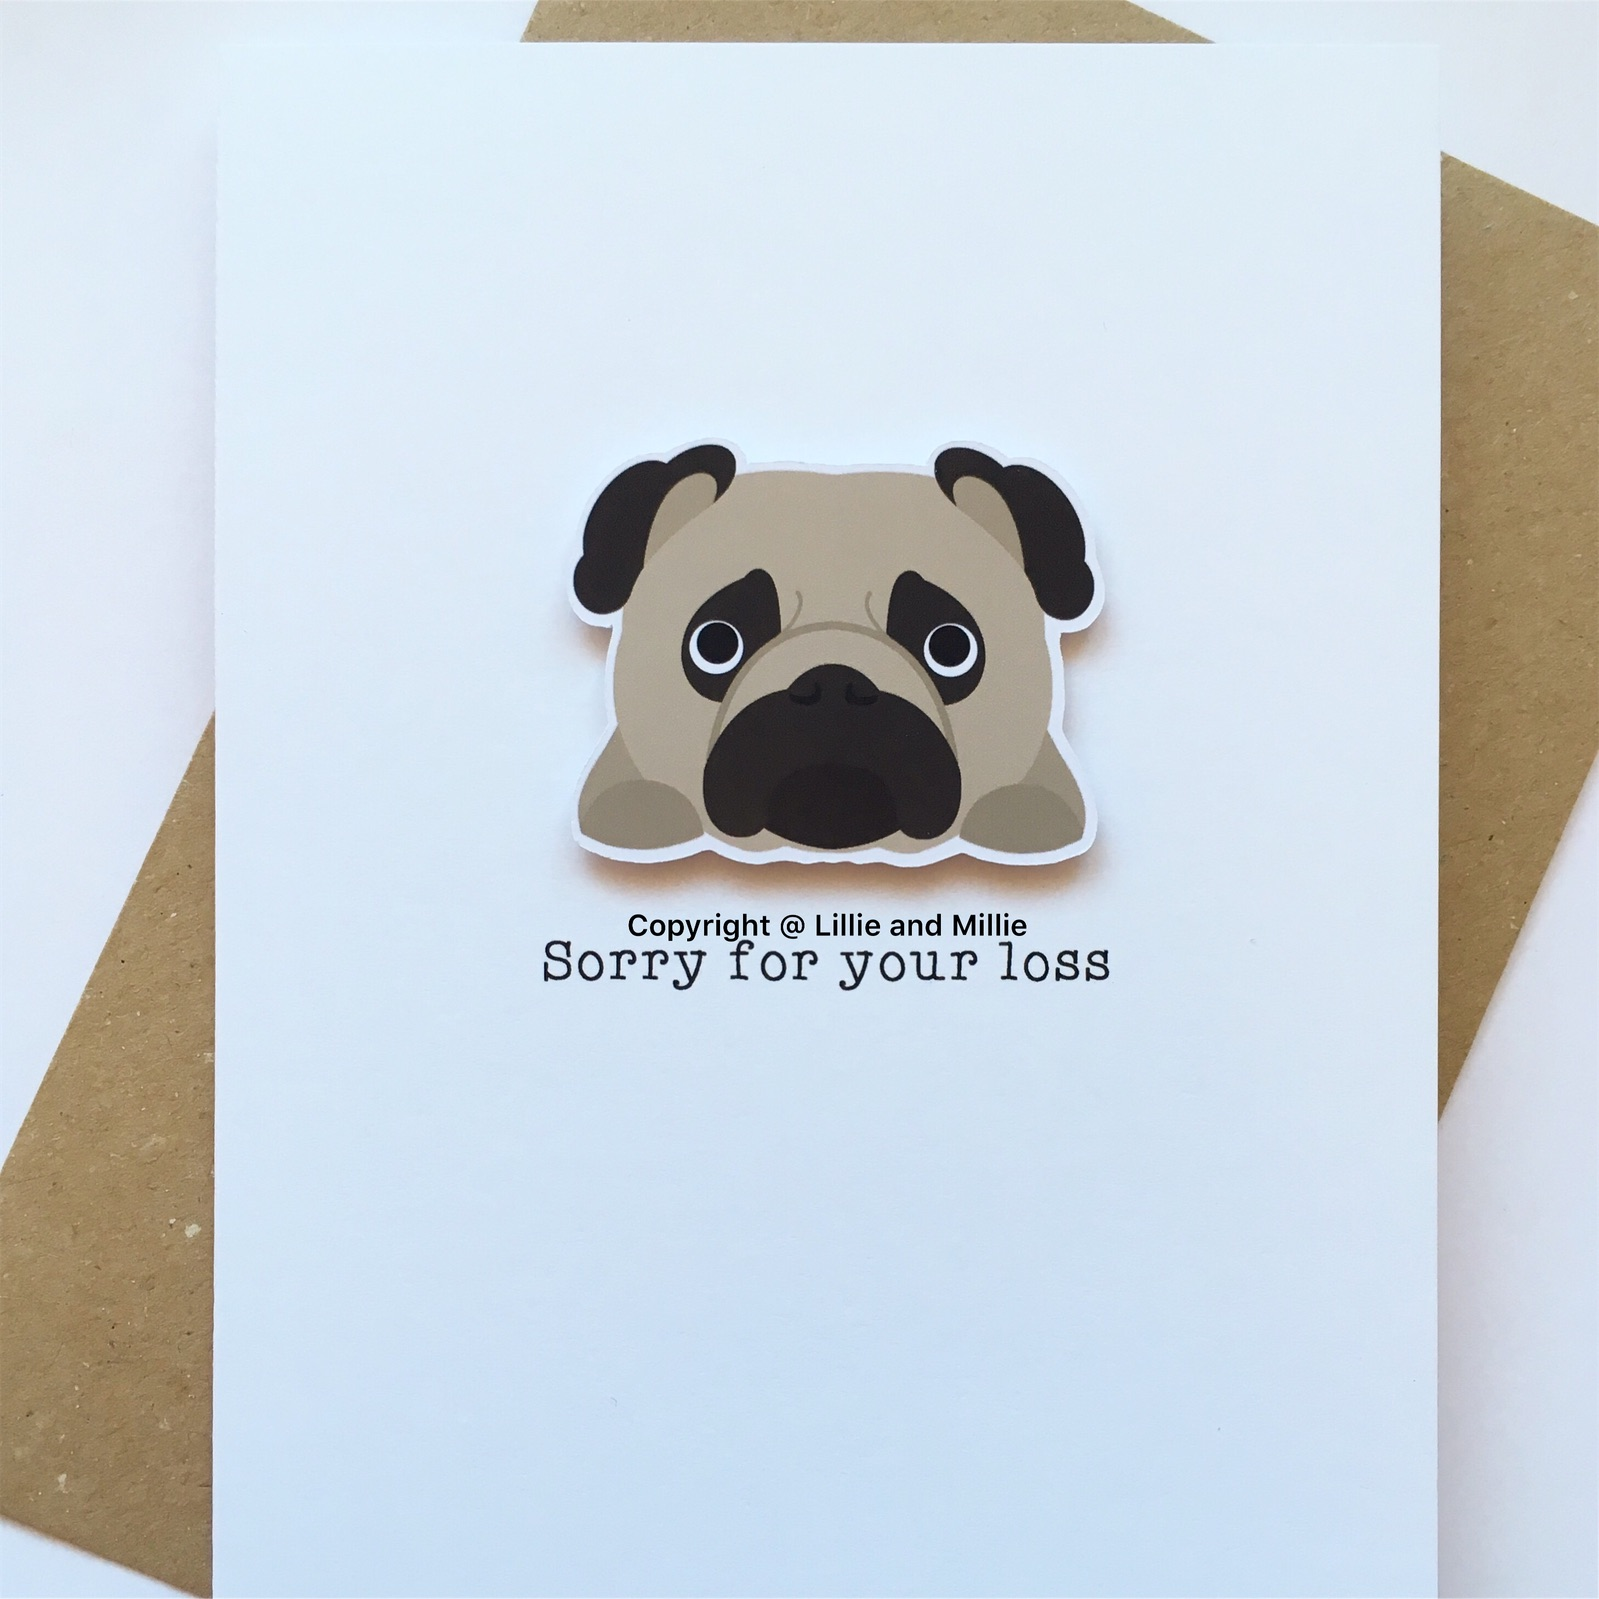 Precious Pooch Fawn Pug Sorry For Your Loss Sympathy Card